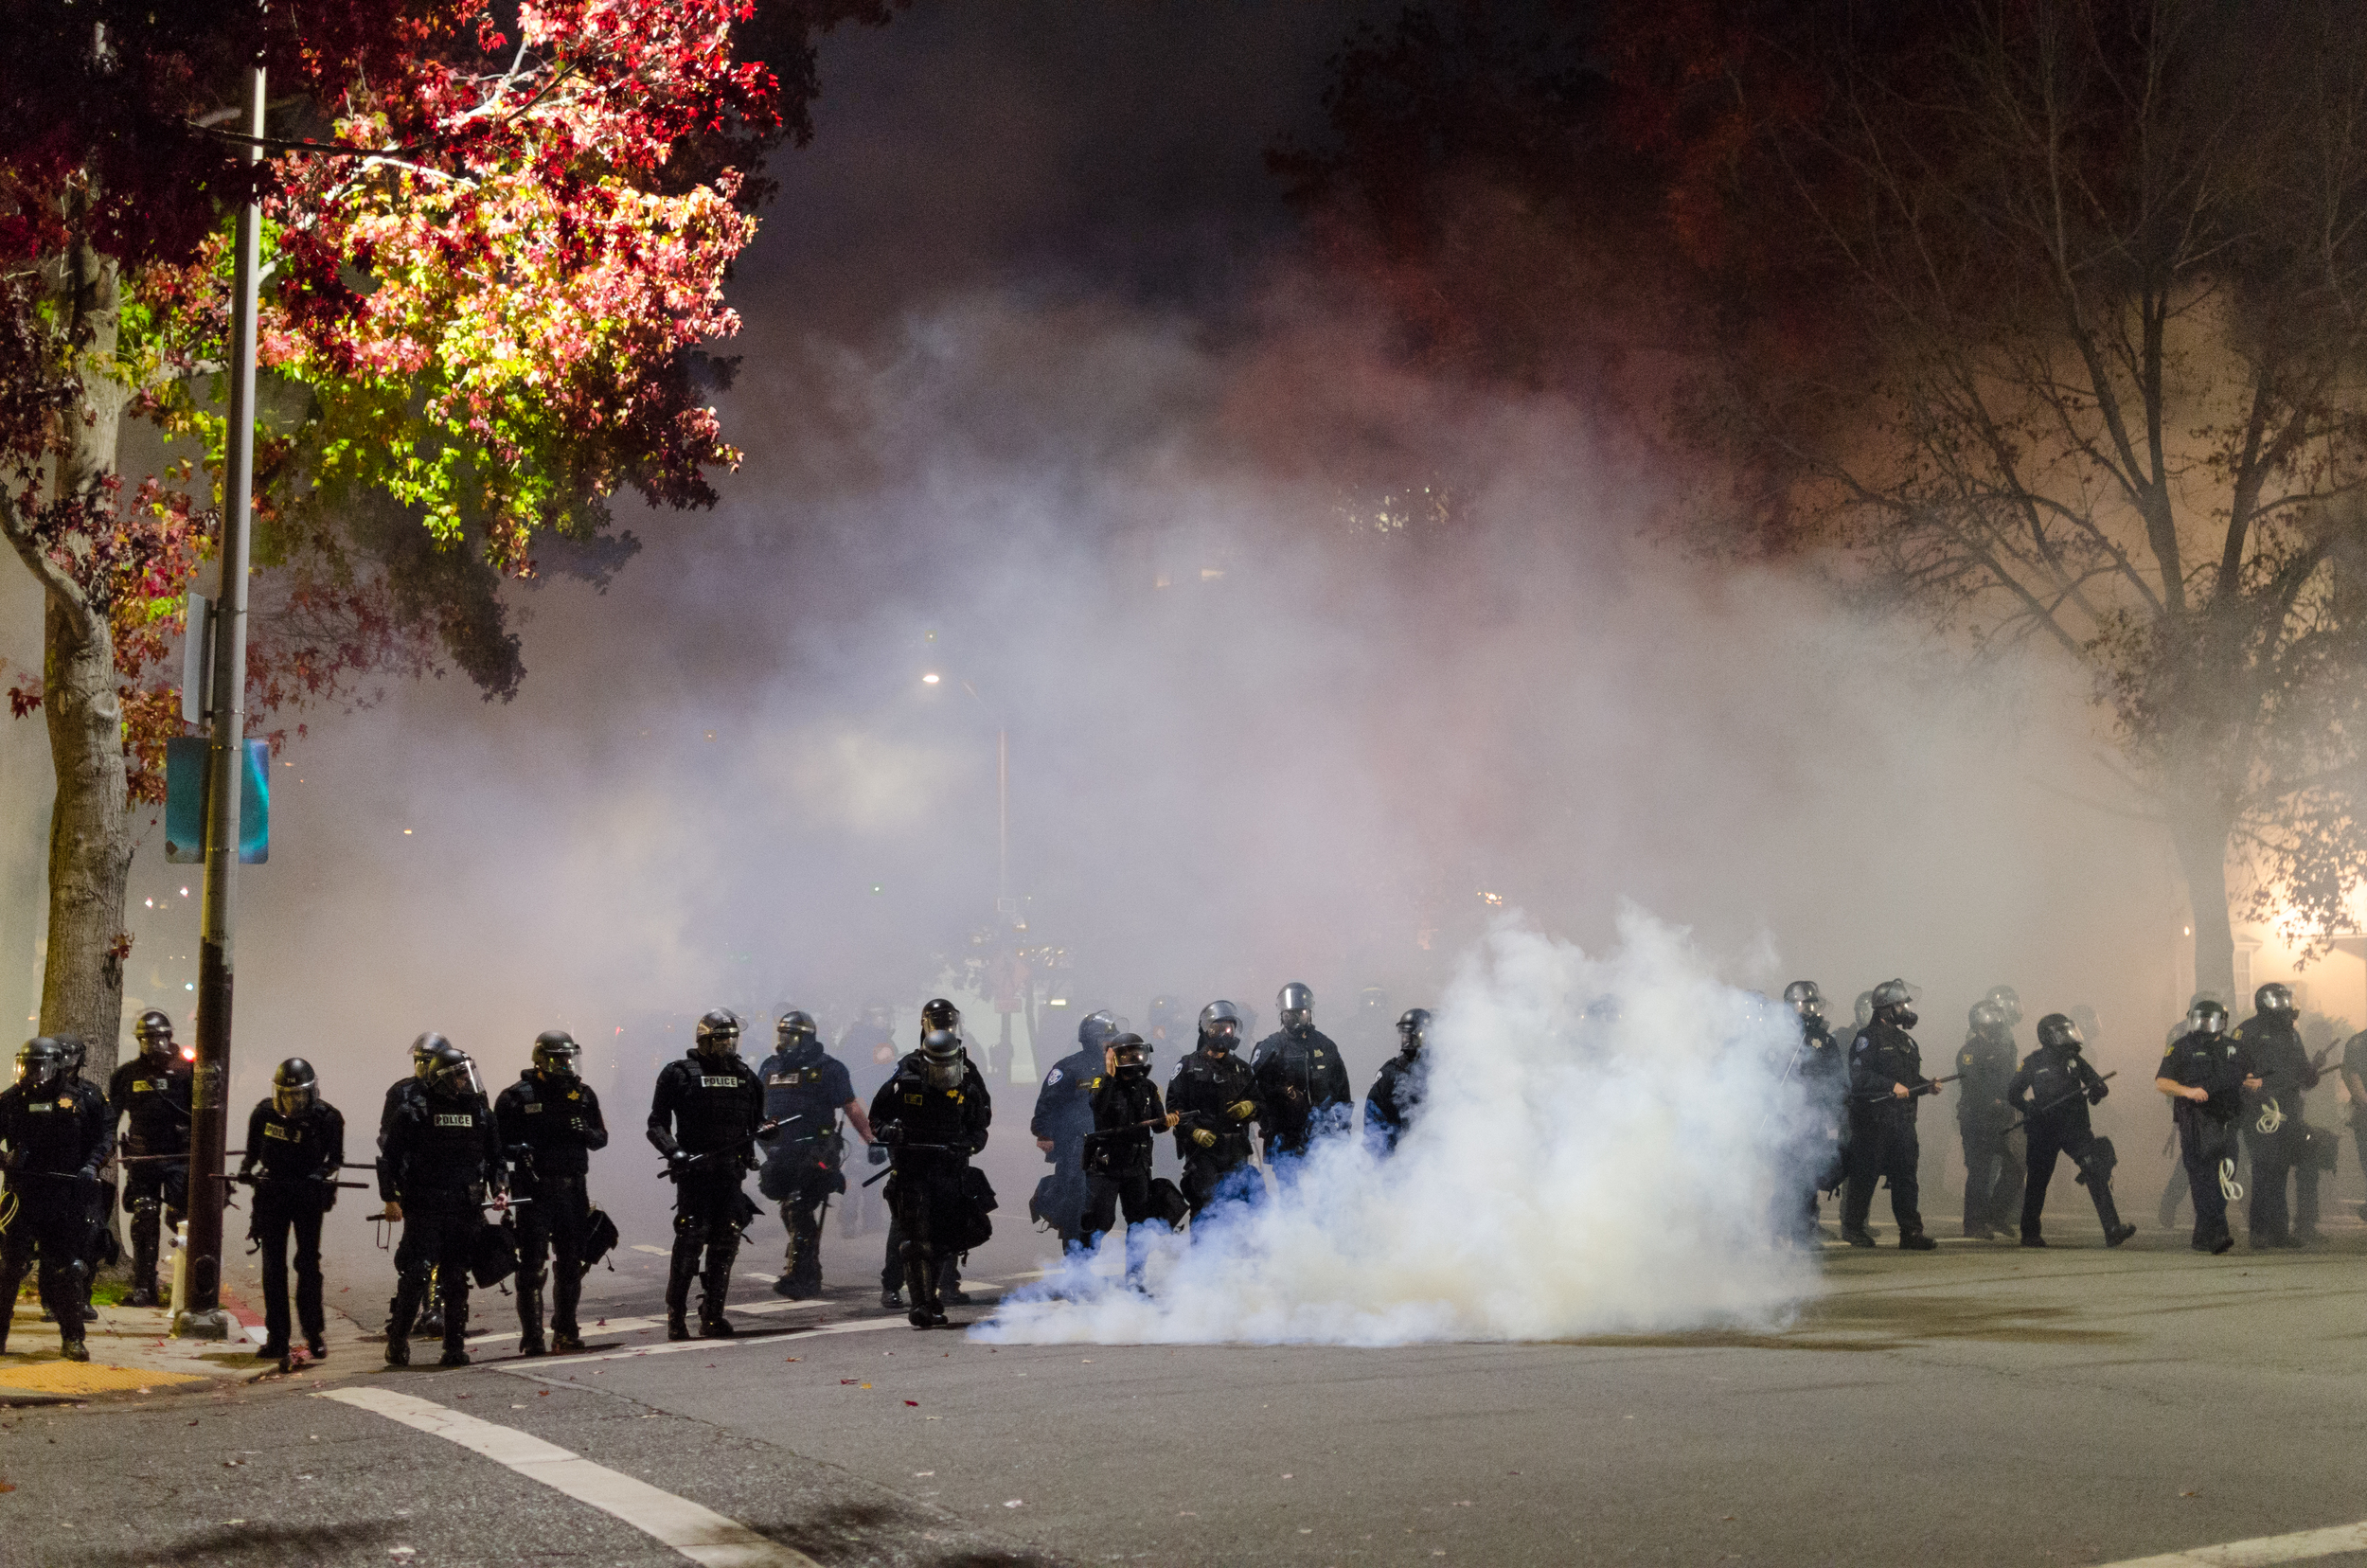 Line of gas masked police marching through tear gas towards a crowd of fleeing protesters on December 6th, 2014 in Berkeley, CA - photo by Kyle Cameron